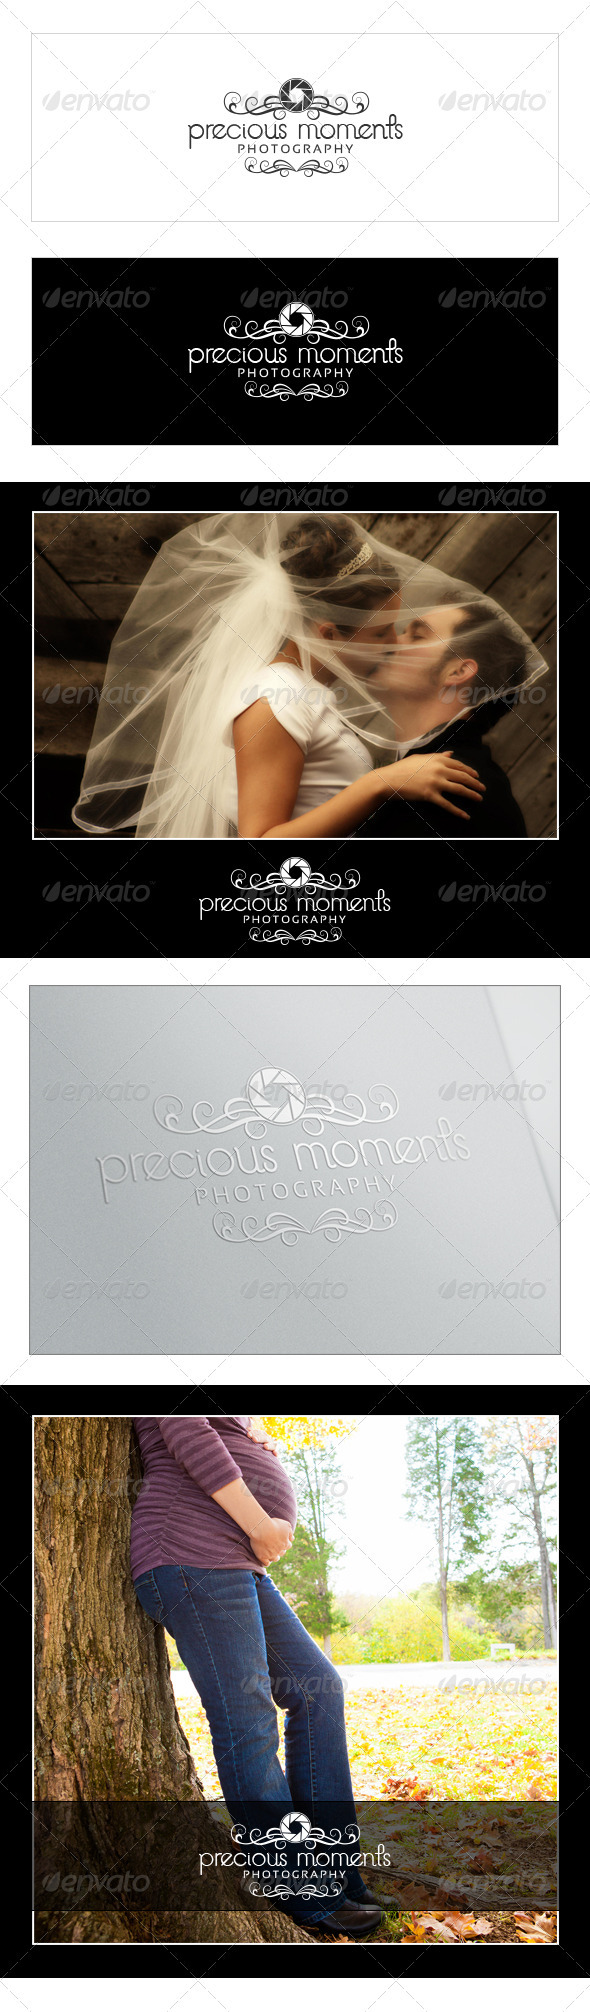 GraphicRiver Precious Moments Photography Logo 3672015